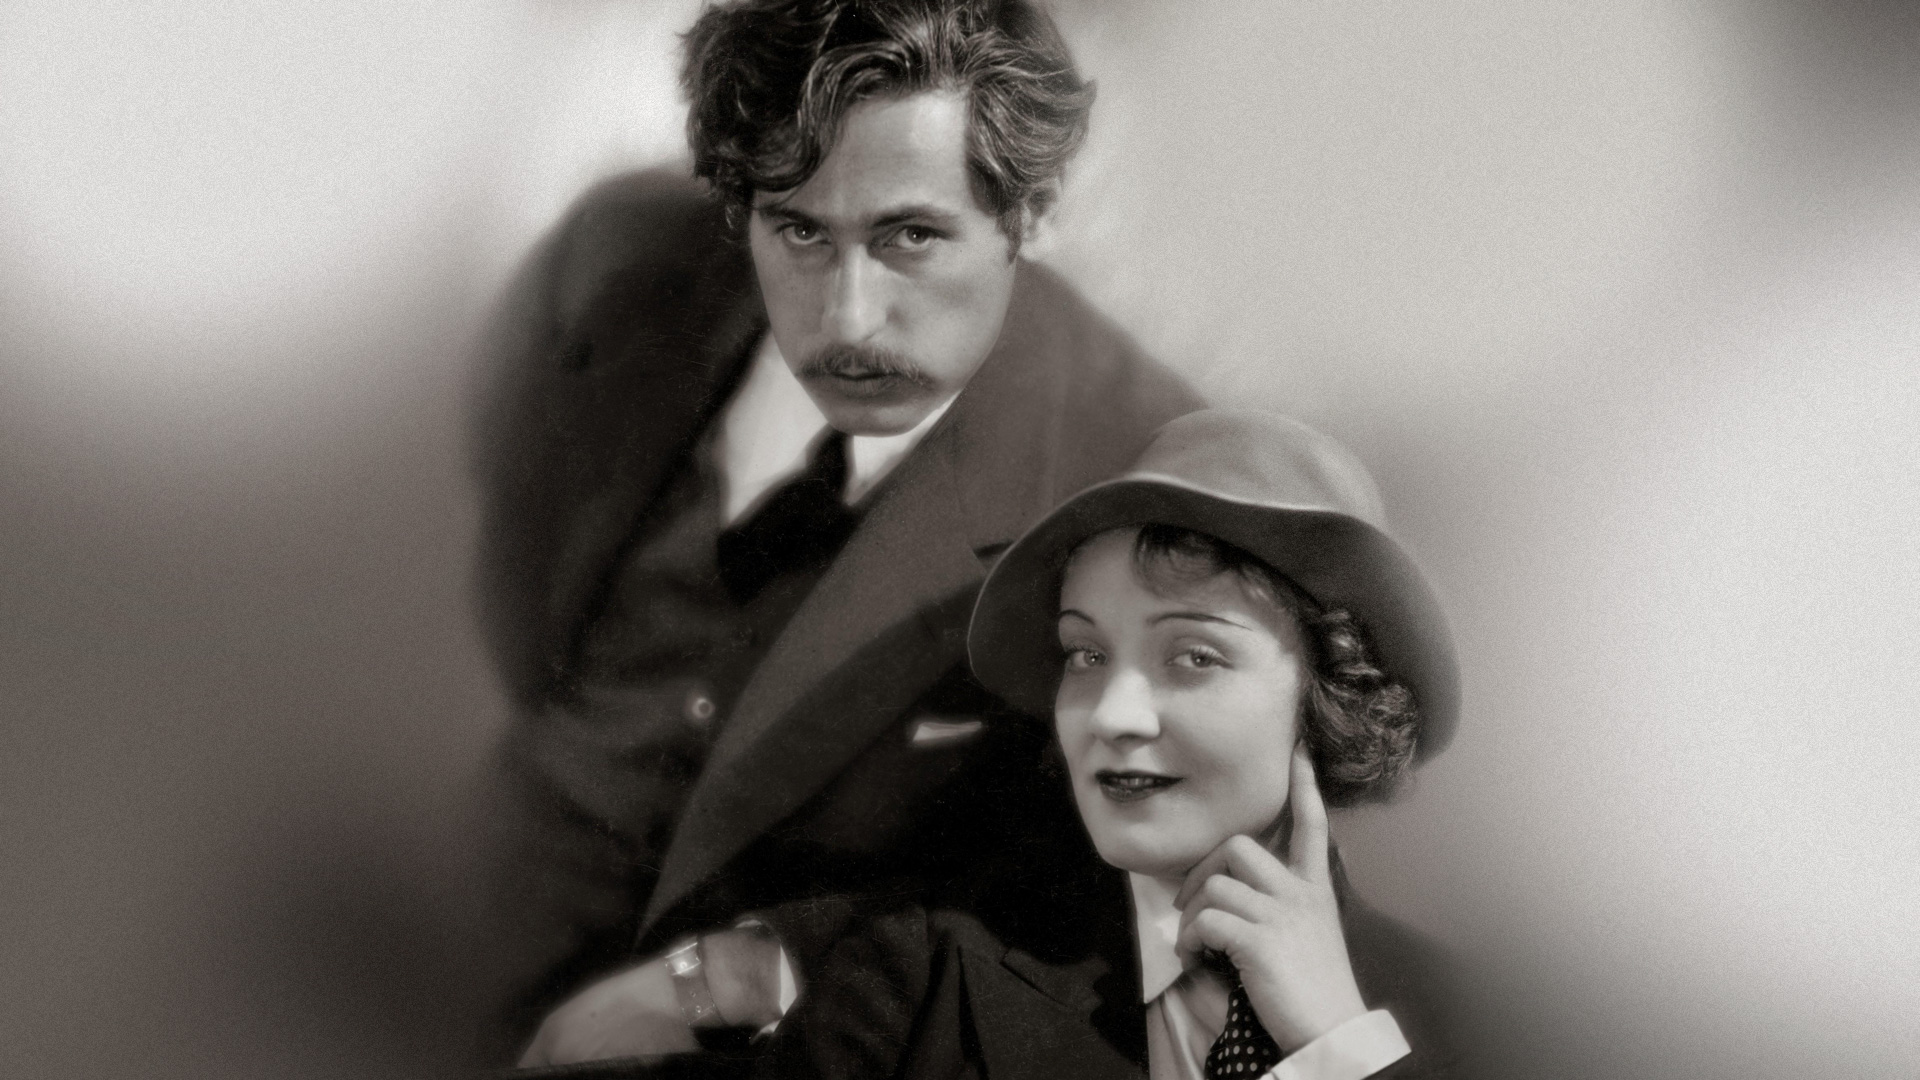 Der Blaue Engel Josef Von Sternberg Gifts From Marlene Dietrich And Vivien Leigh To Legendary